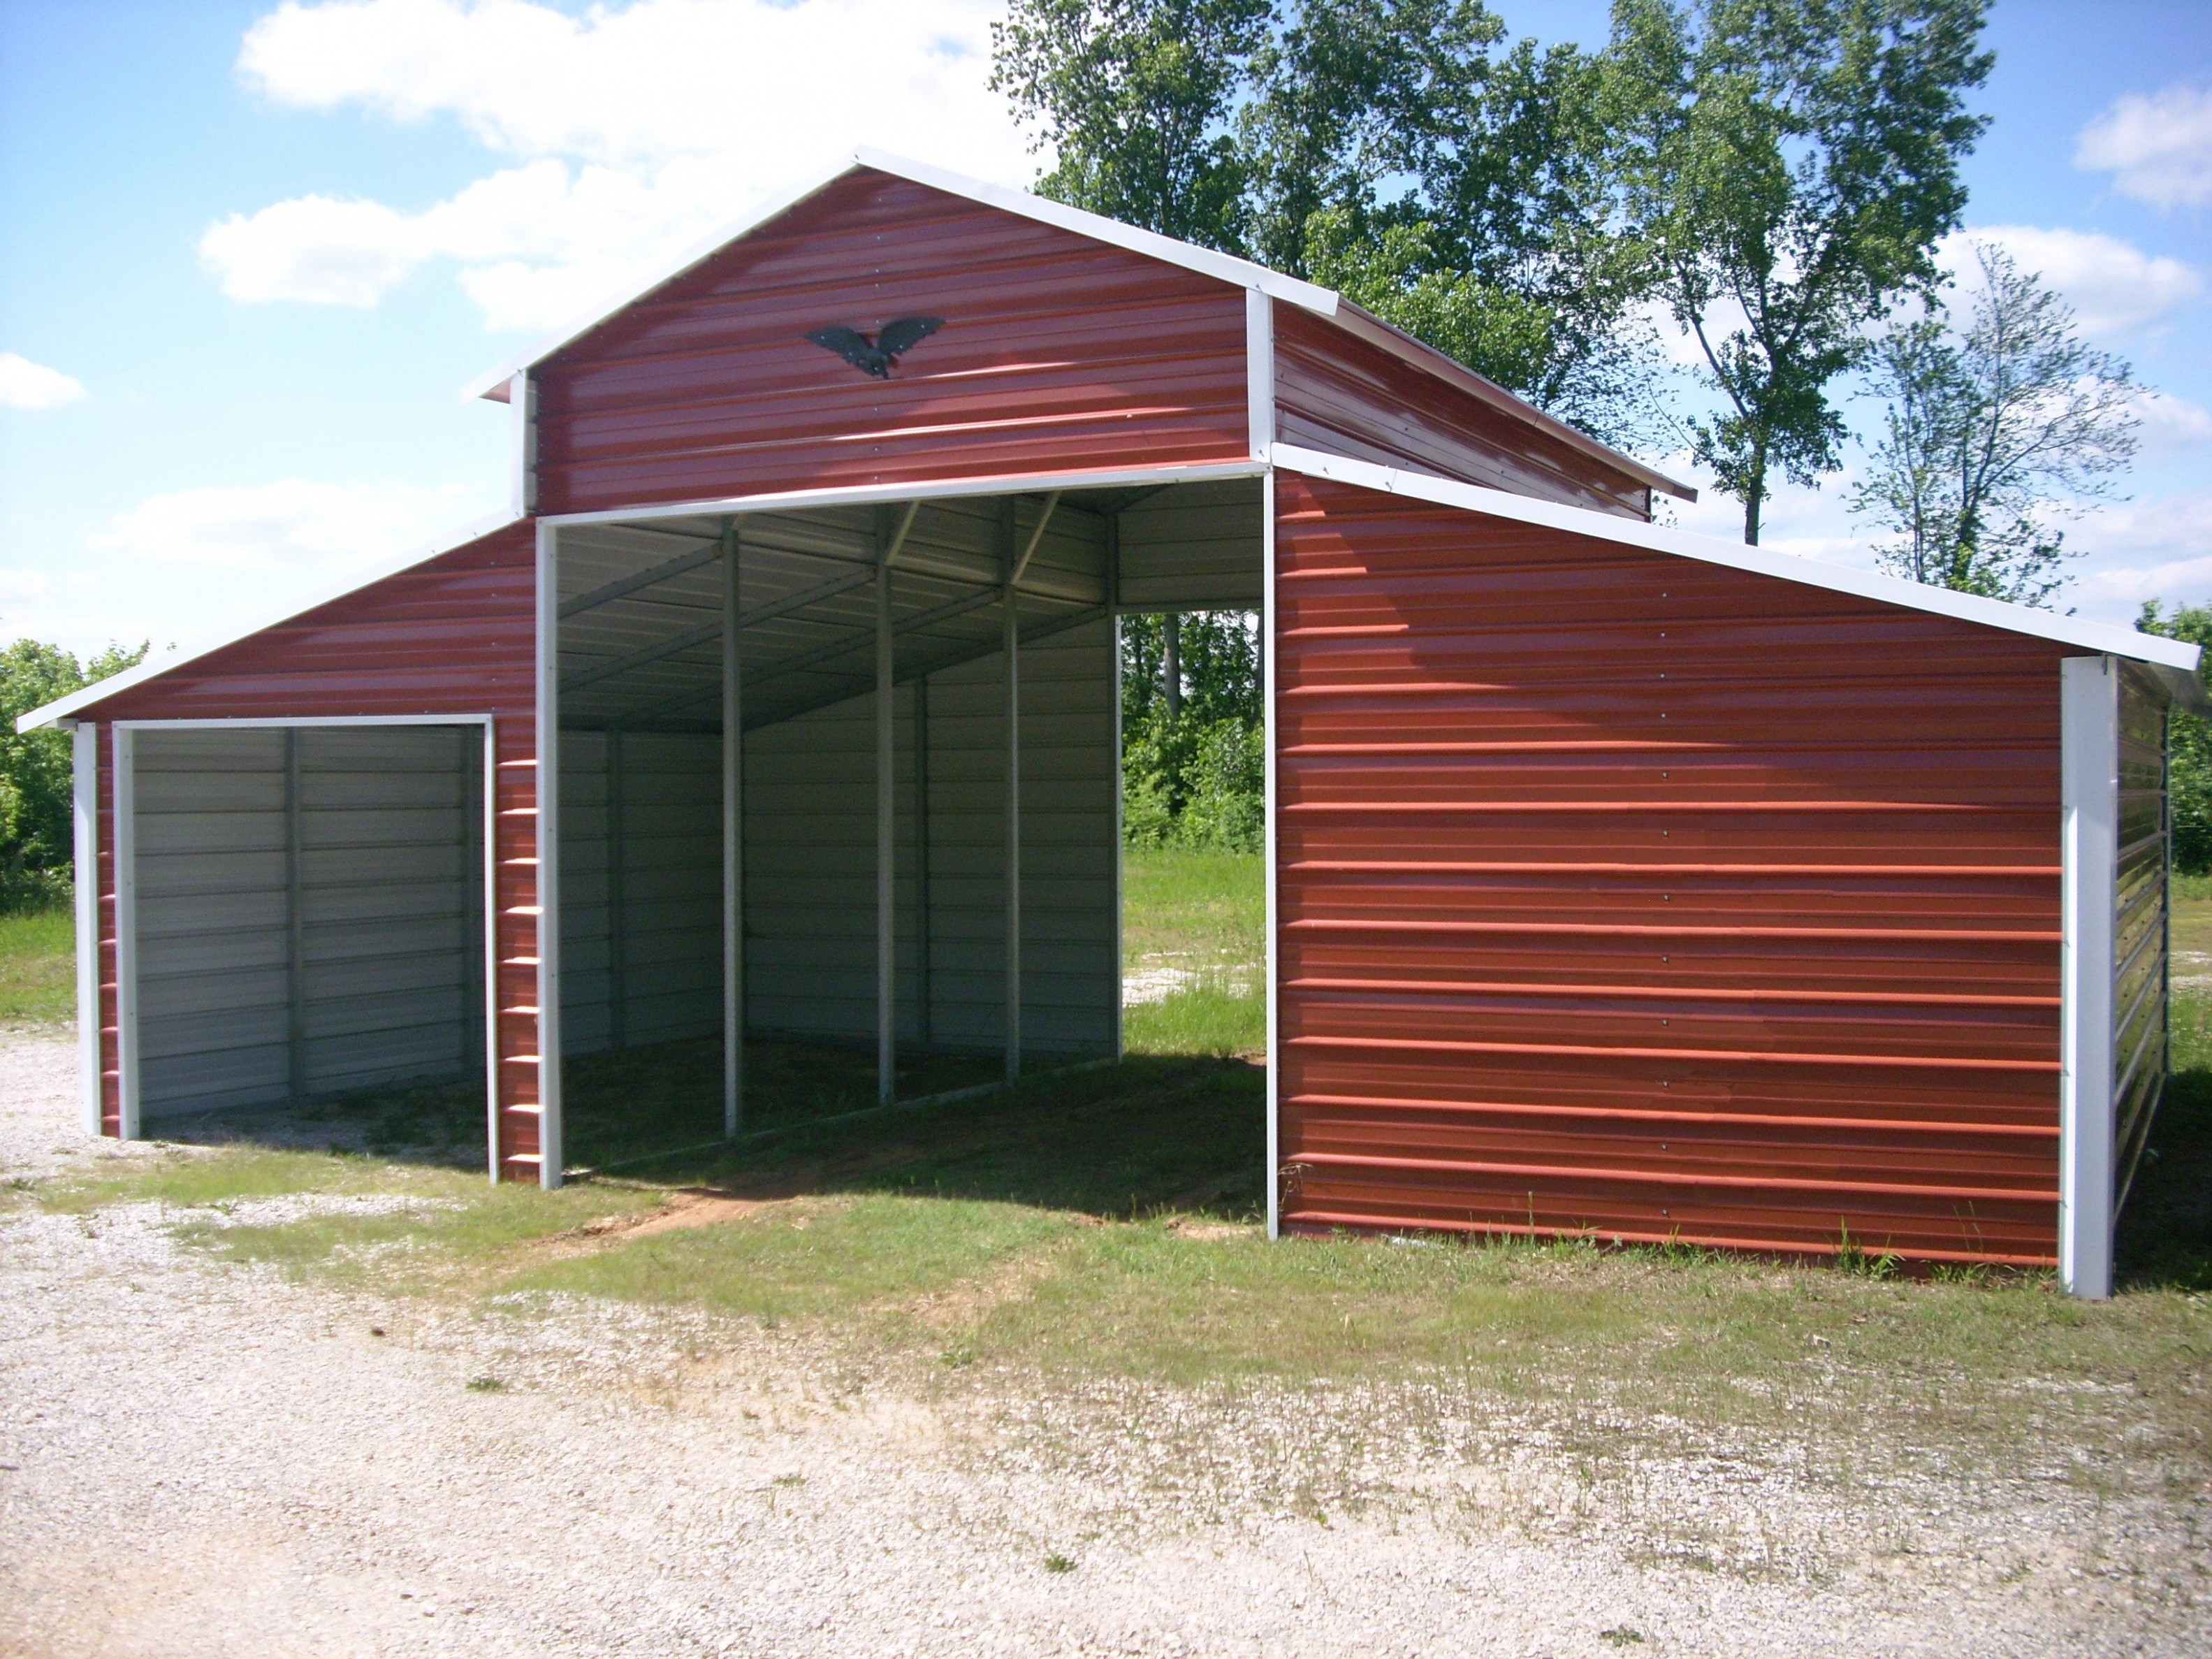 Eliminate Your Fears And Doubts About Metal Carports Near Me | metal carports near me